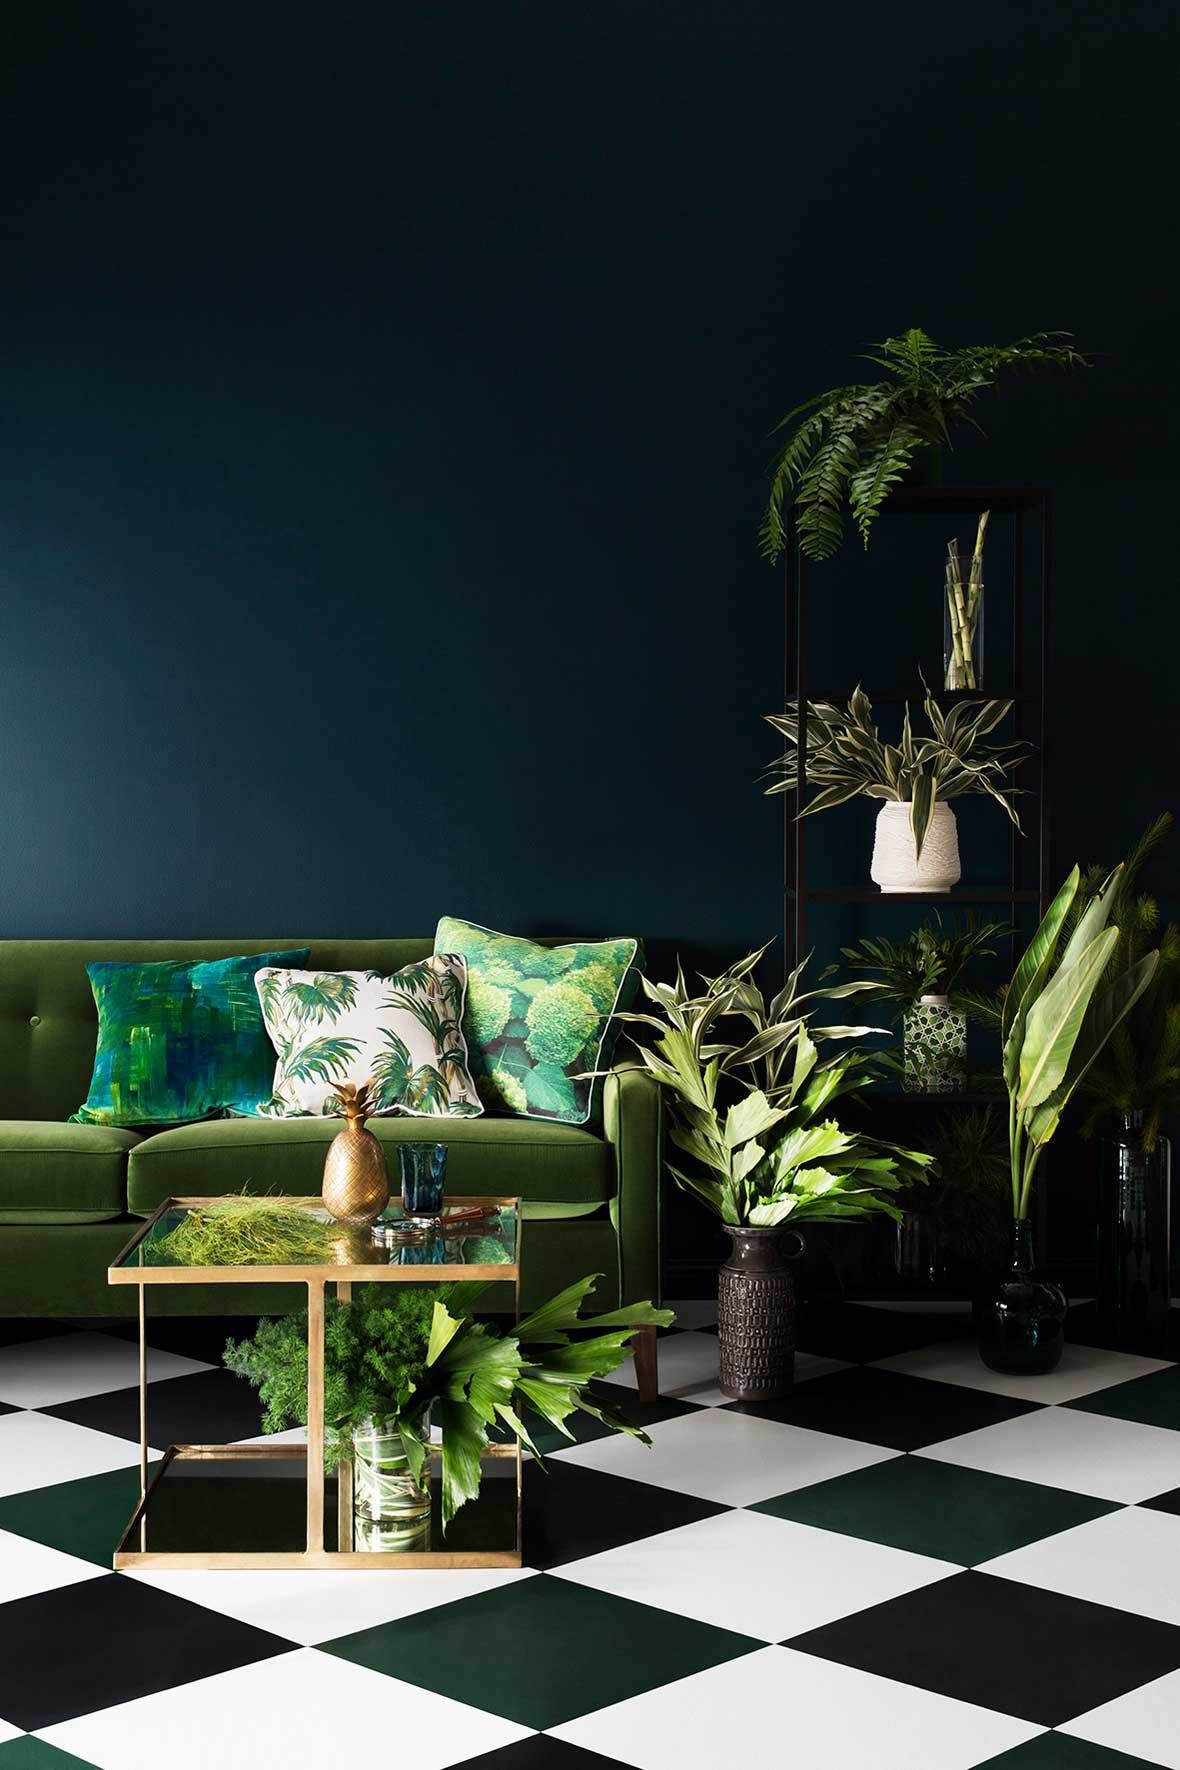 Lounge paint it out dark blue black with gold green and black and white